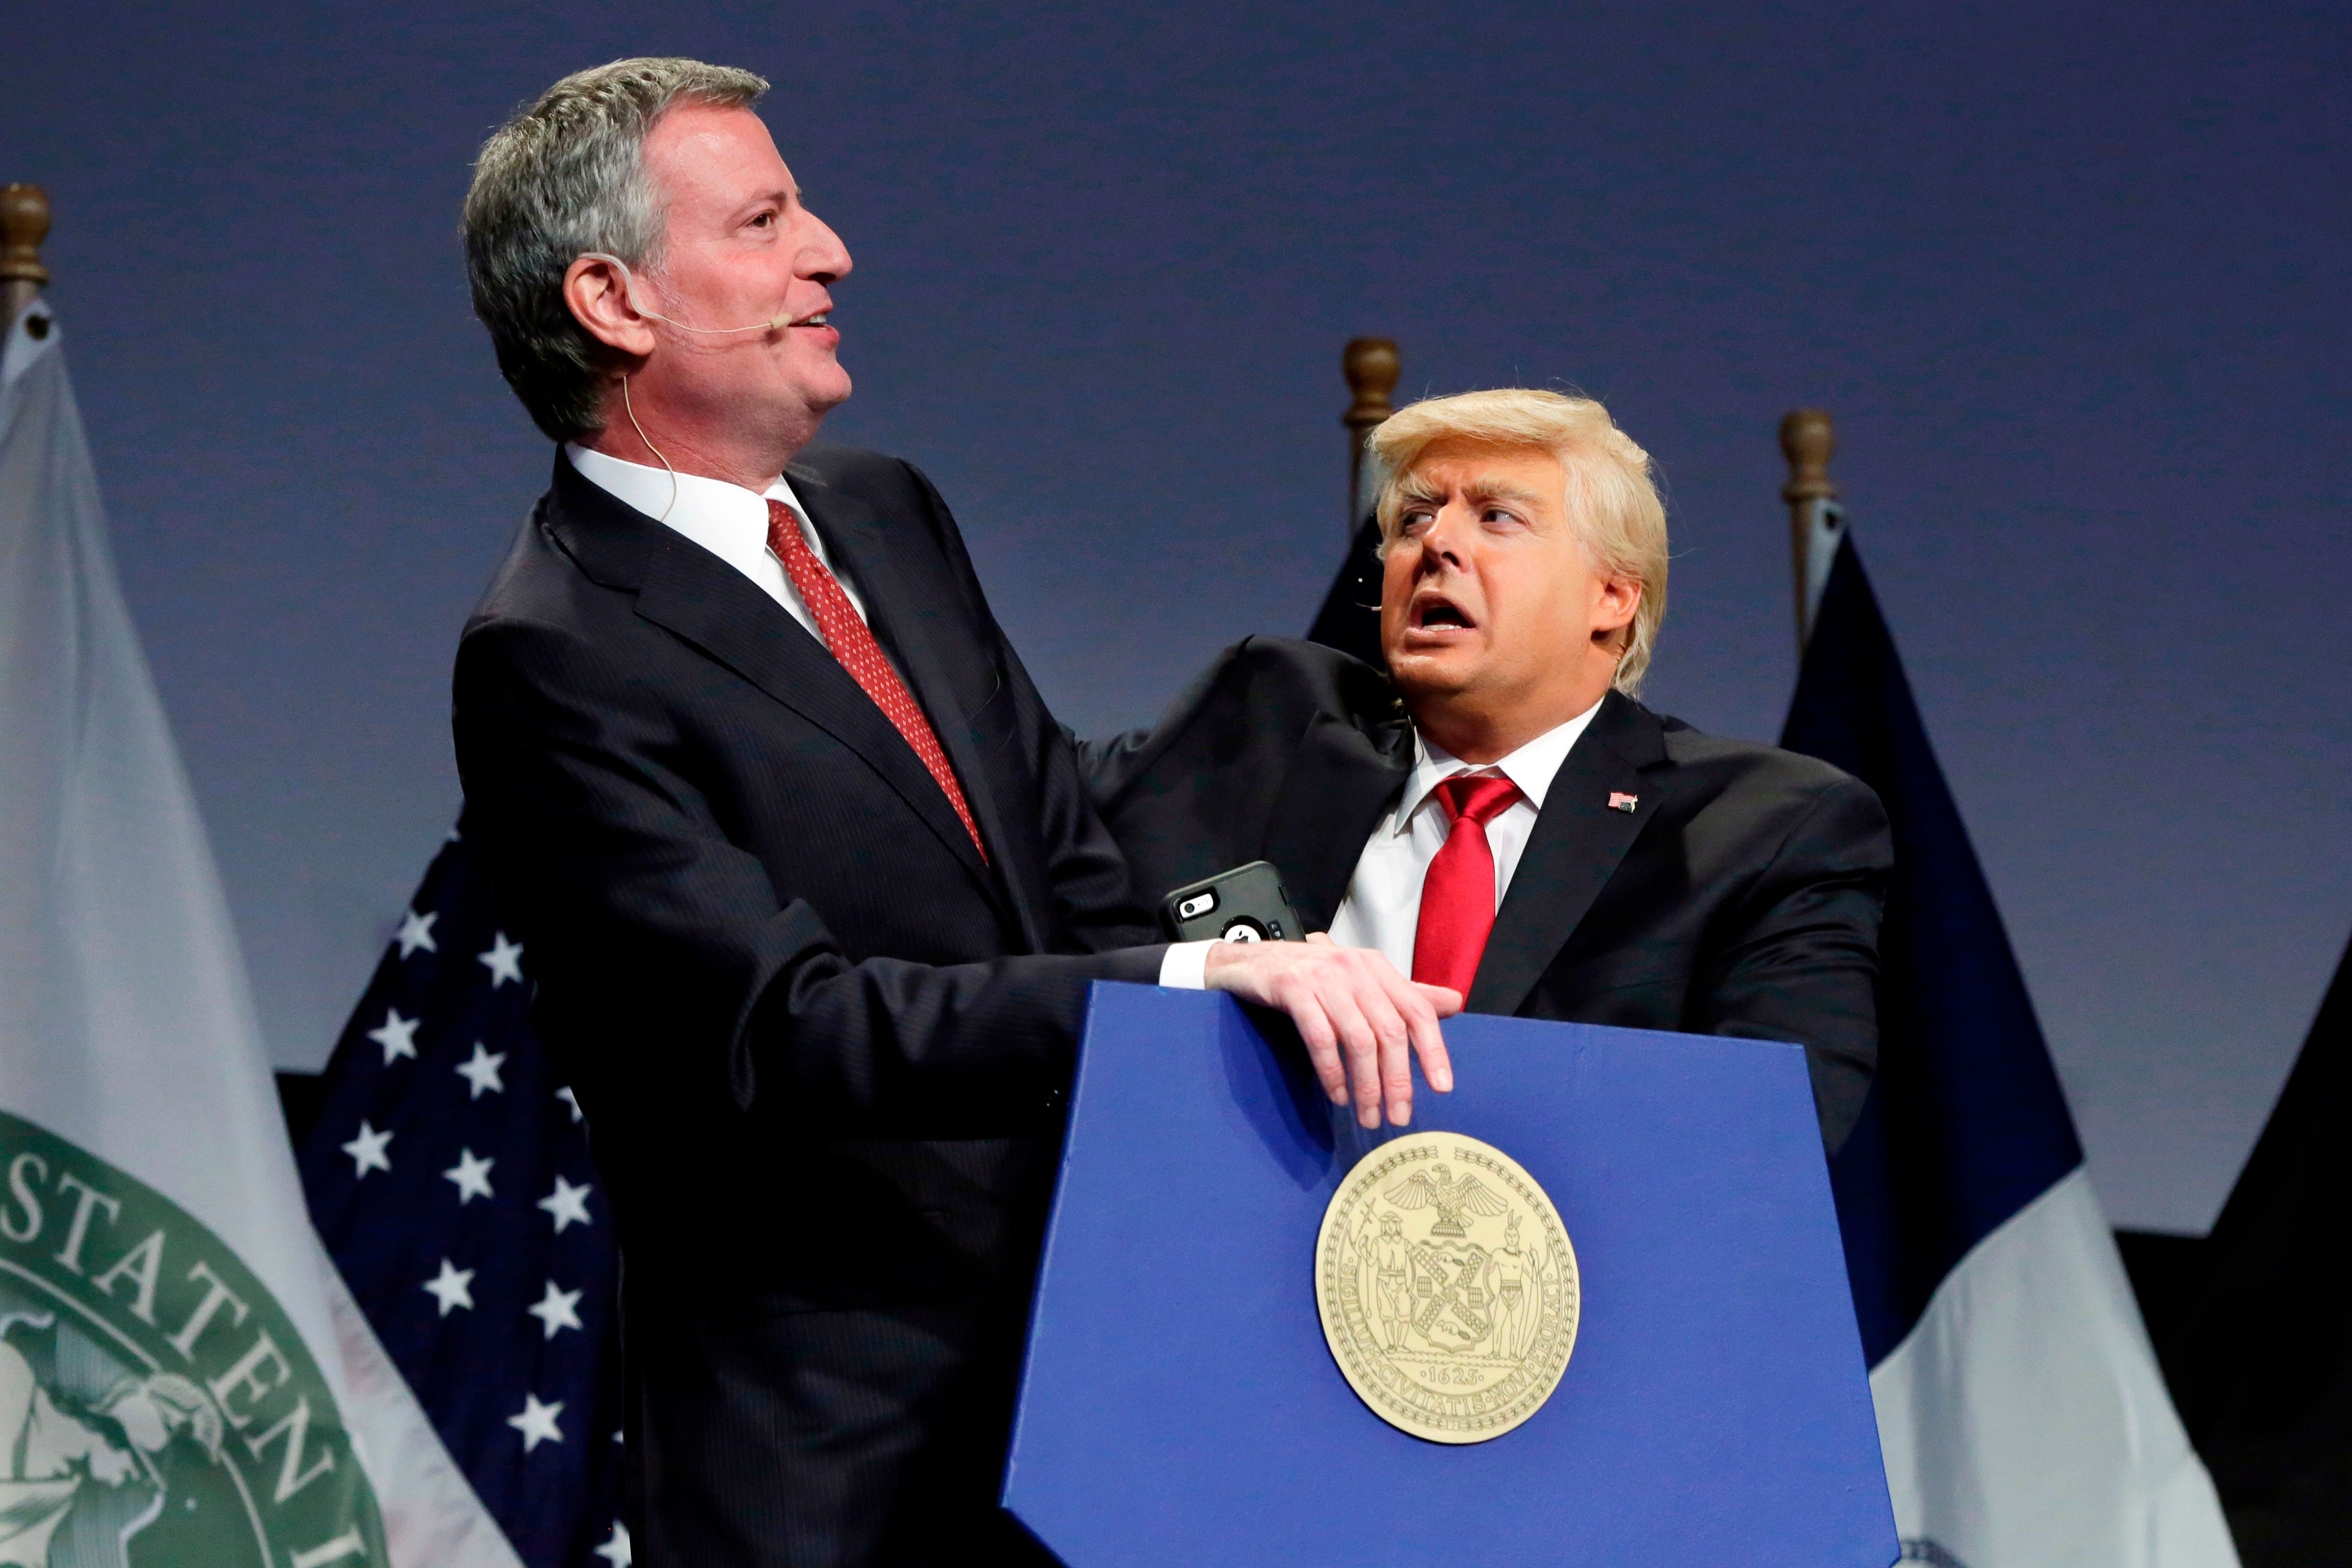 """New York Mayor Bill de Blasio, left, performs with Donald Trump impersonator Anthony Atamanuik, during the mayor's response to """"Curb Your Narcissism,"""" the 95th annual Inner Circle Show, in New York, Saturday, April 21, 2018. The charity event features New York City's political reporters who spoof the president, the mayor, and politicians. (AP Photo/Richard Drew)"""